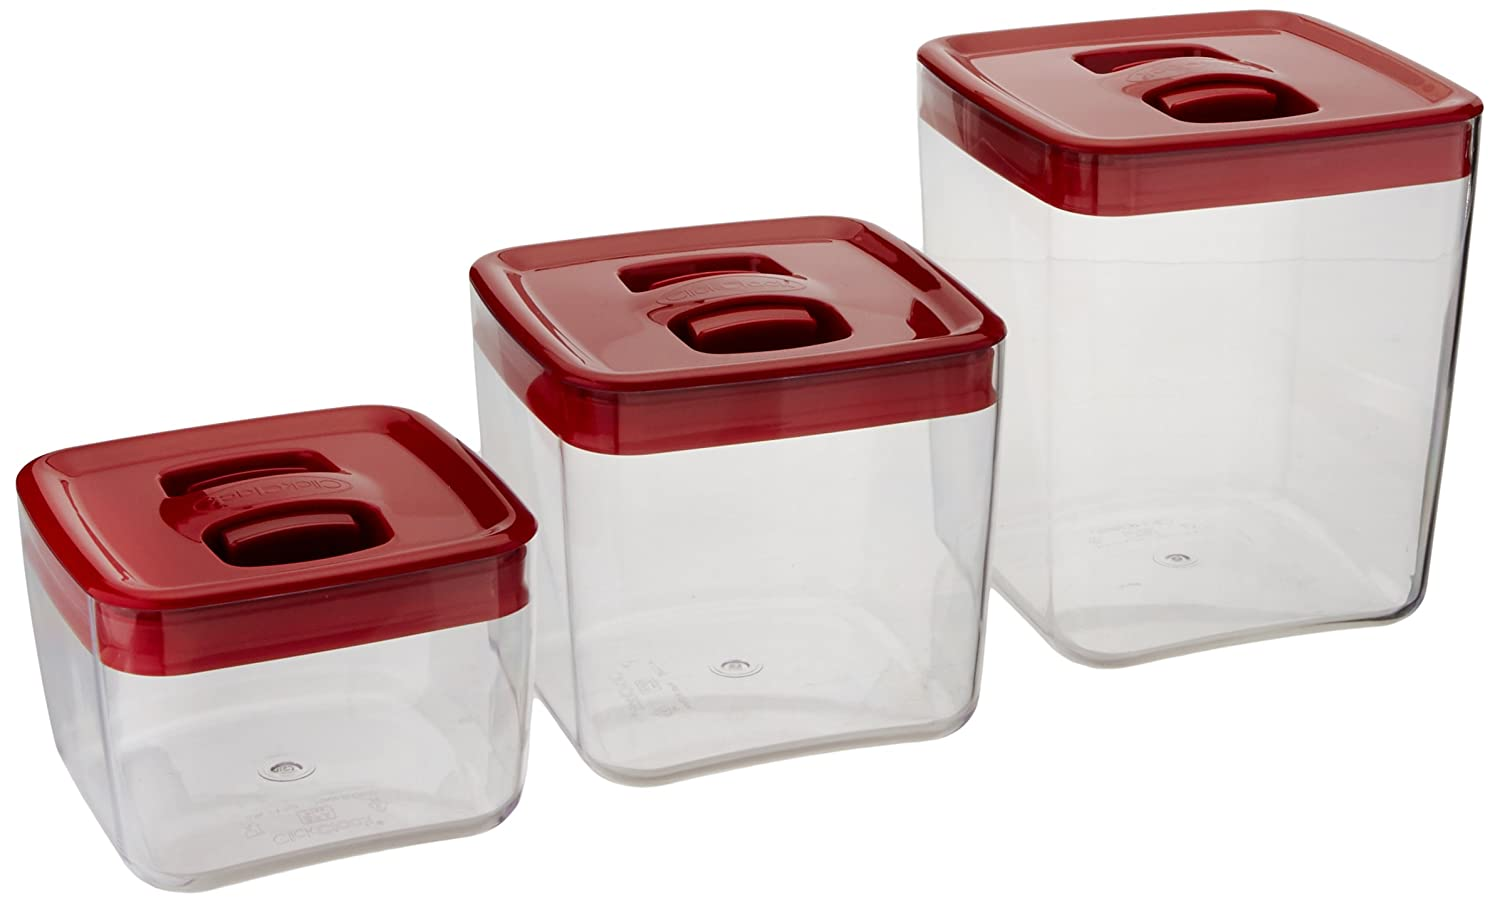 amazon com clickclack cube storage container set of 3 1 2 and amazon com clickclack cube storage container set of 3 1 2 and 3 1 2 quart kitchen storage and organization product sets kitchen dining